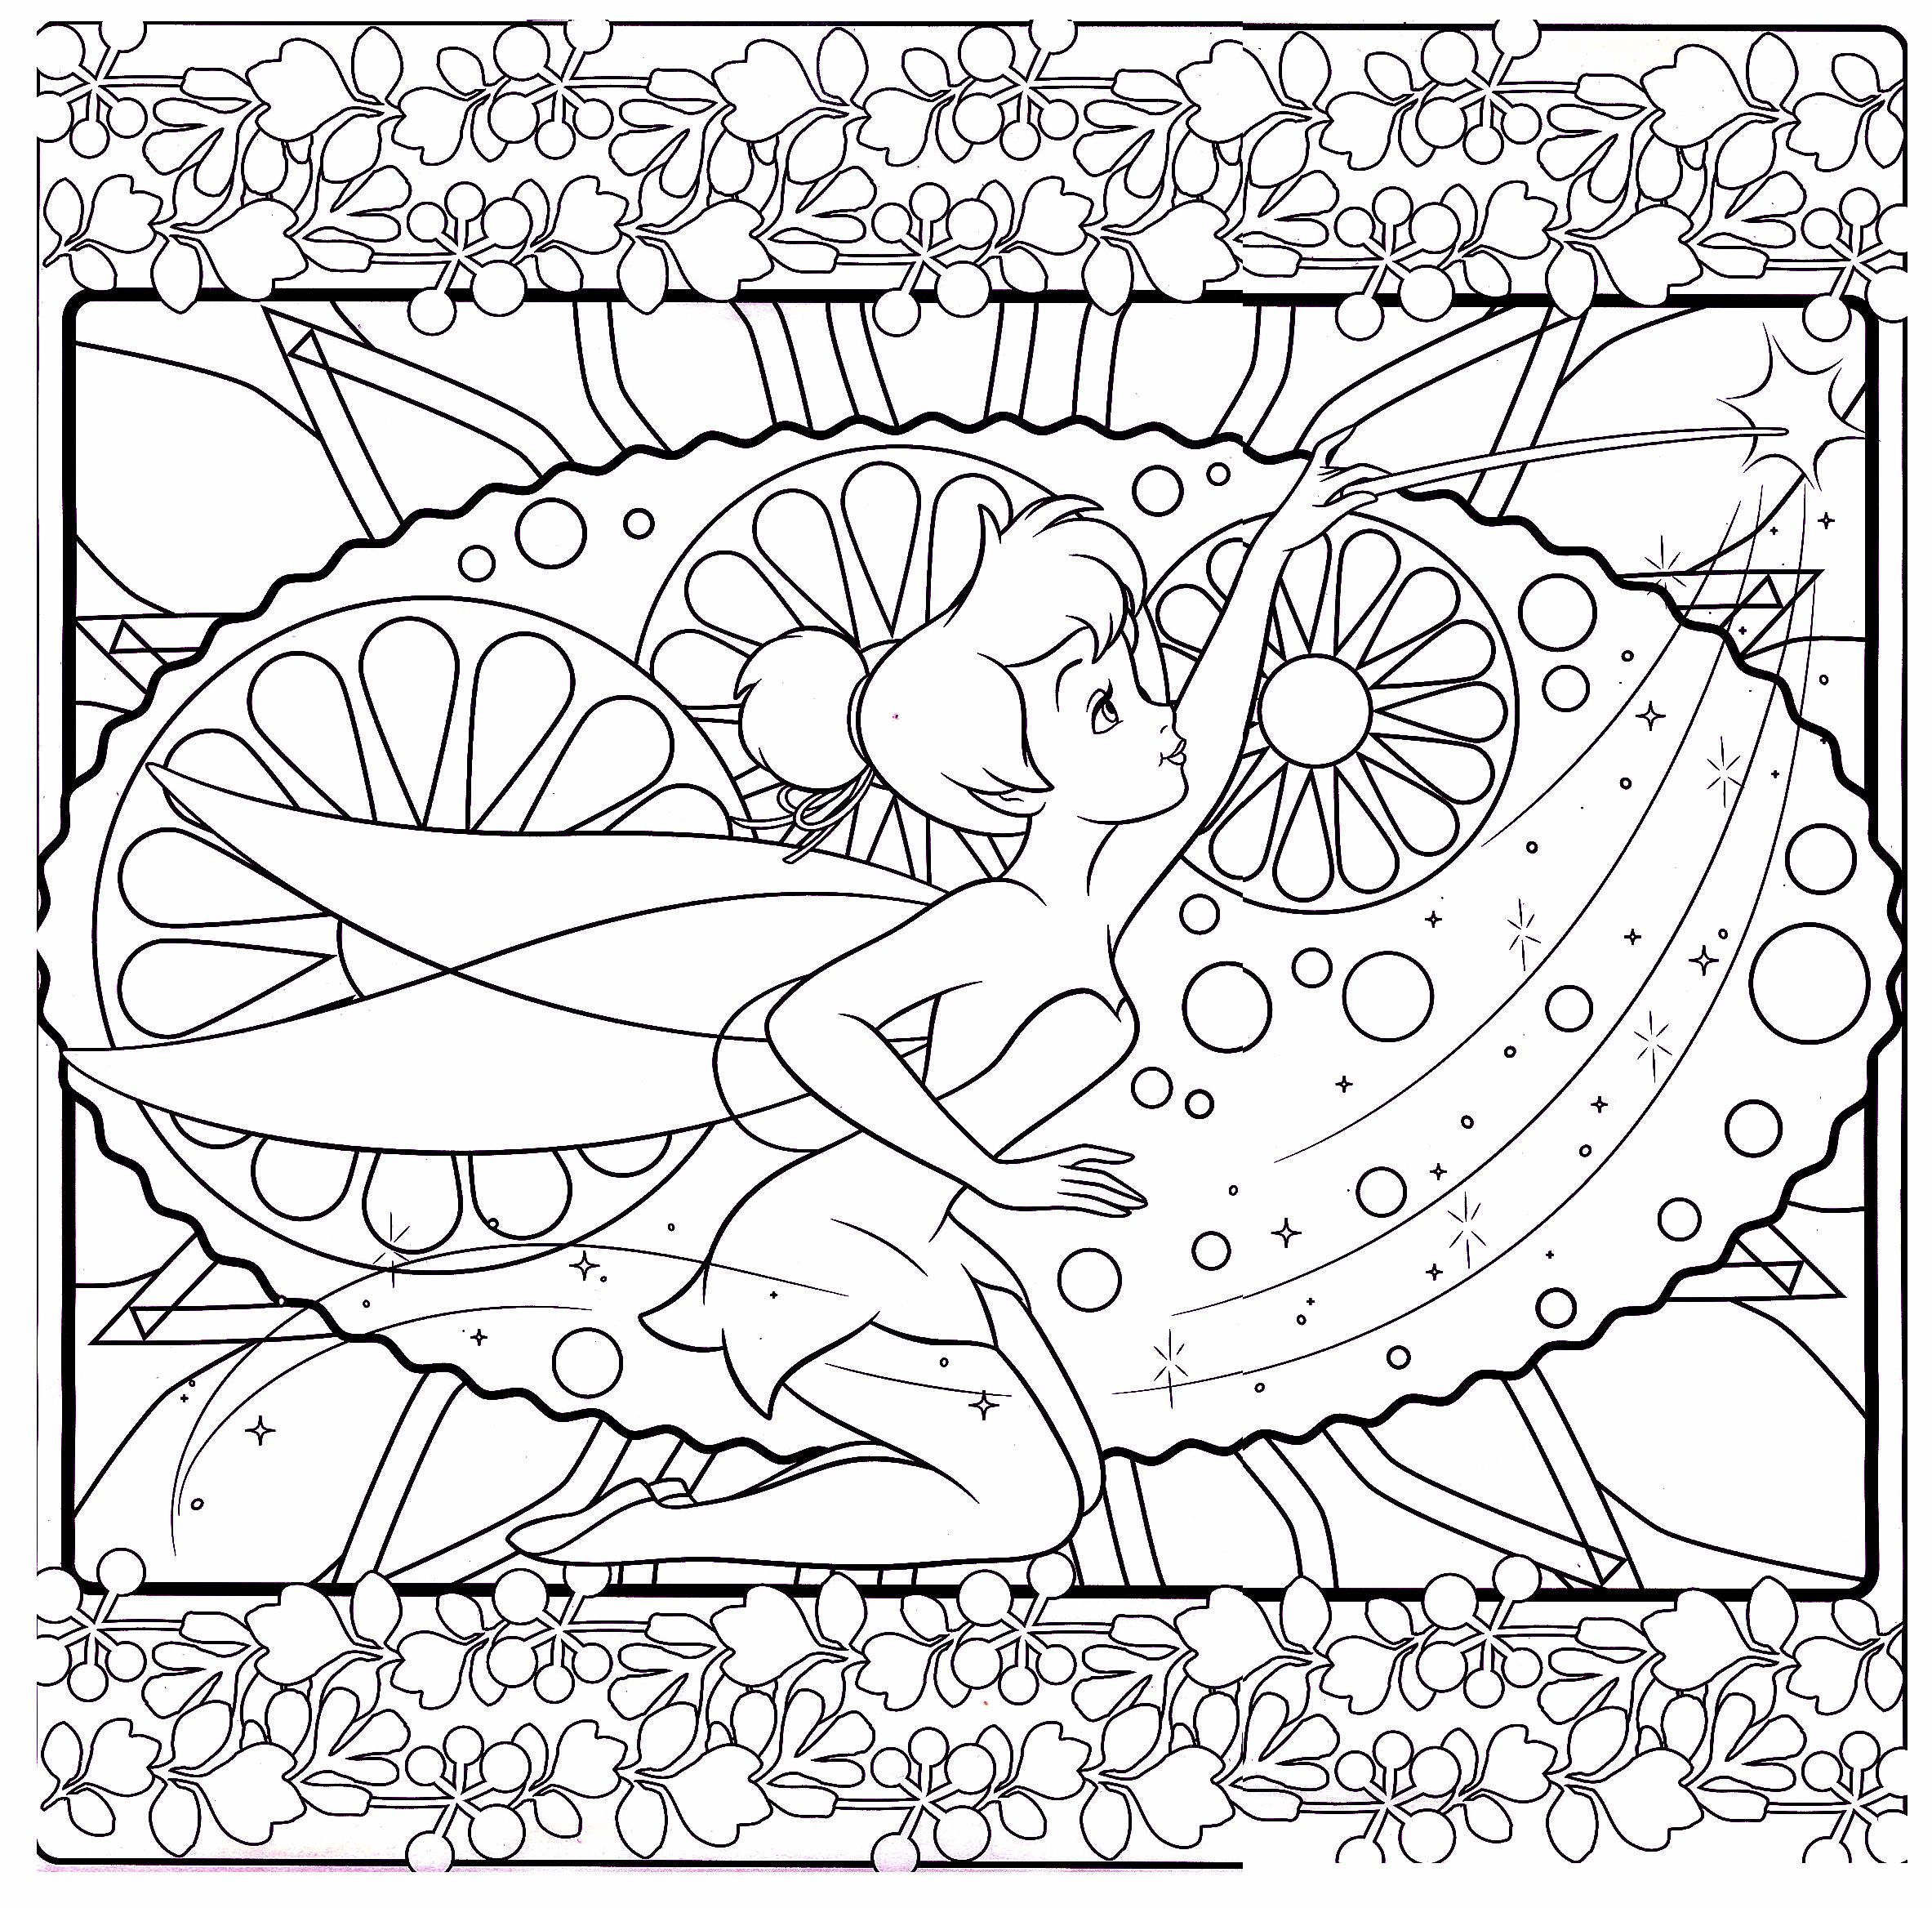 Tinkerbell difficult coloring page mommy coloring pinterest